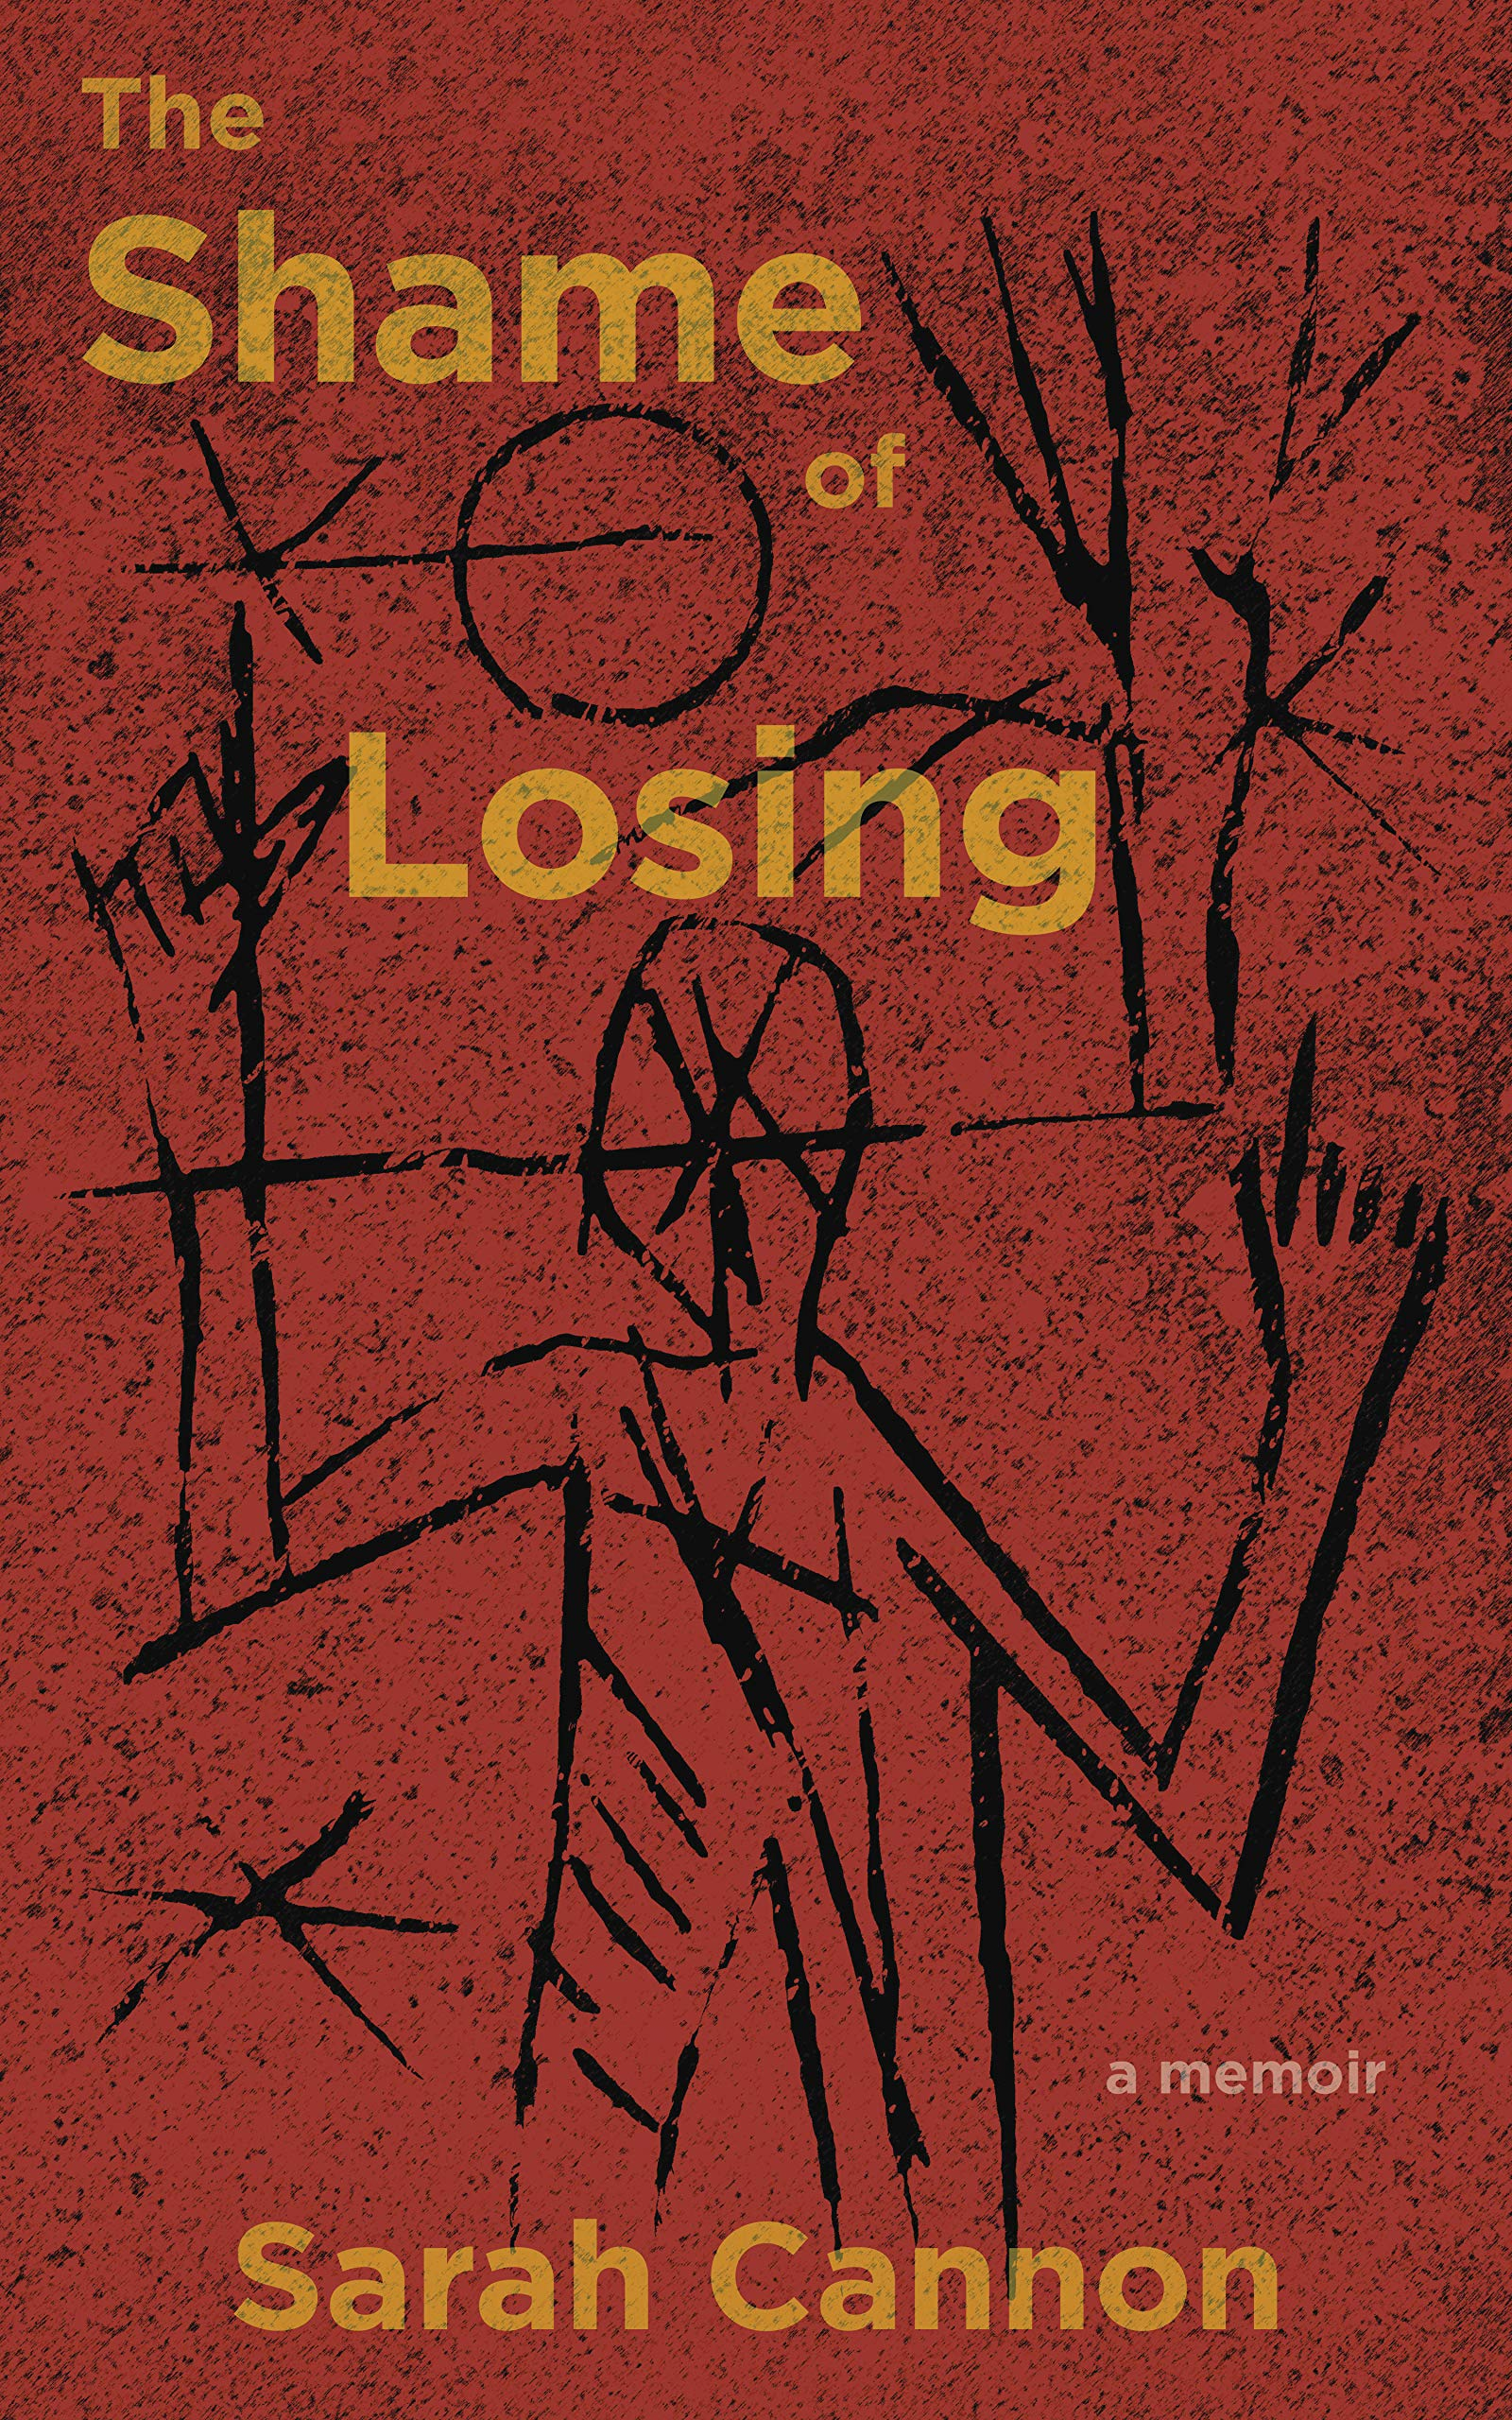 A red background with scratch markings that make up and abstract drawing of a person holding their hands up and yellow script that reads The Shame of Losing a memoir by Sarah Cannon.